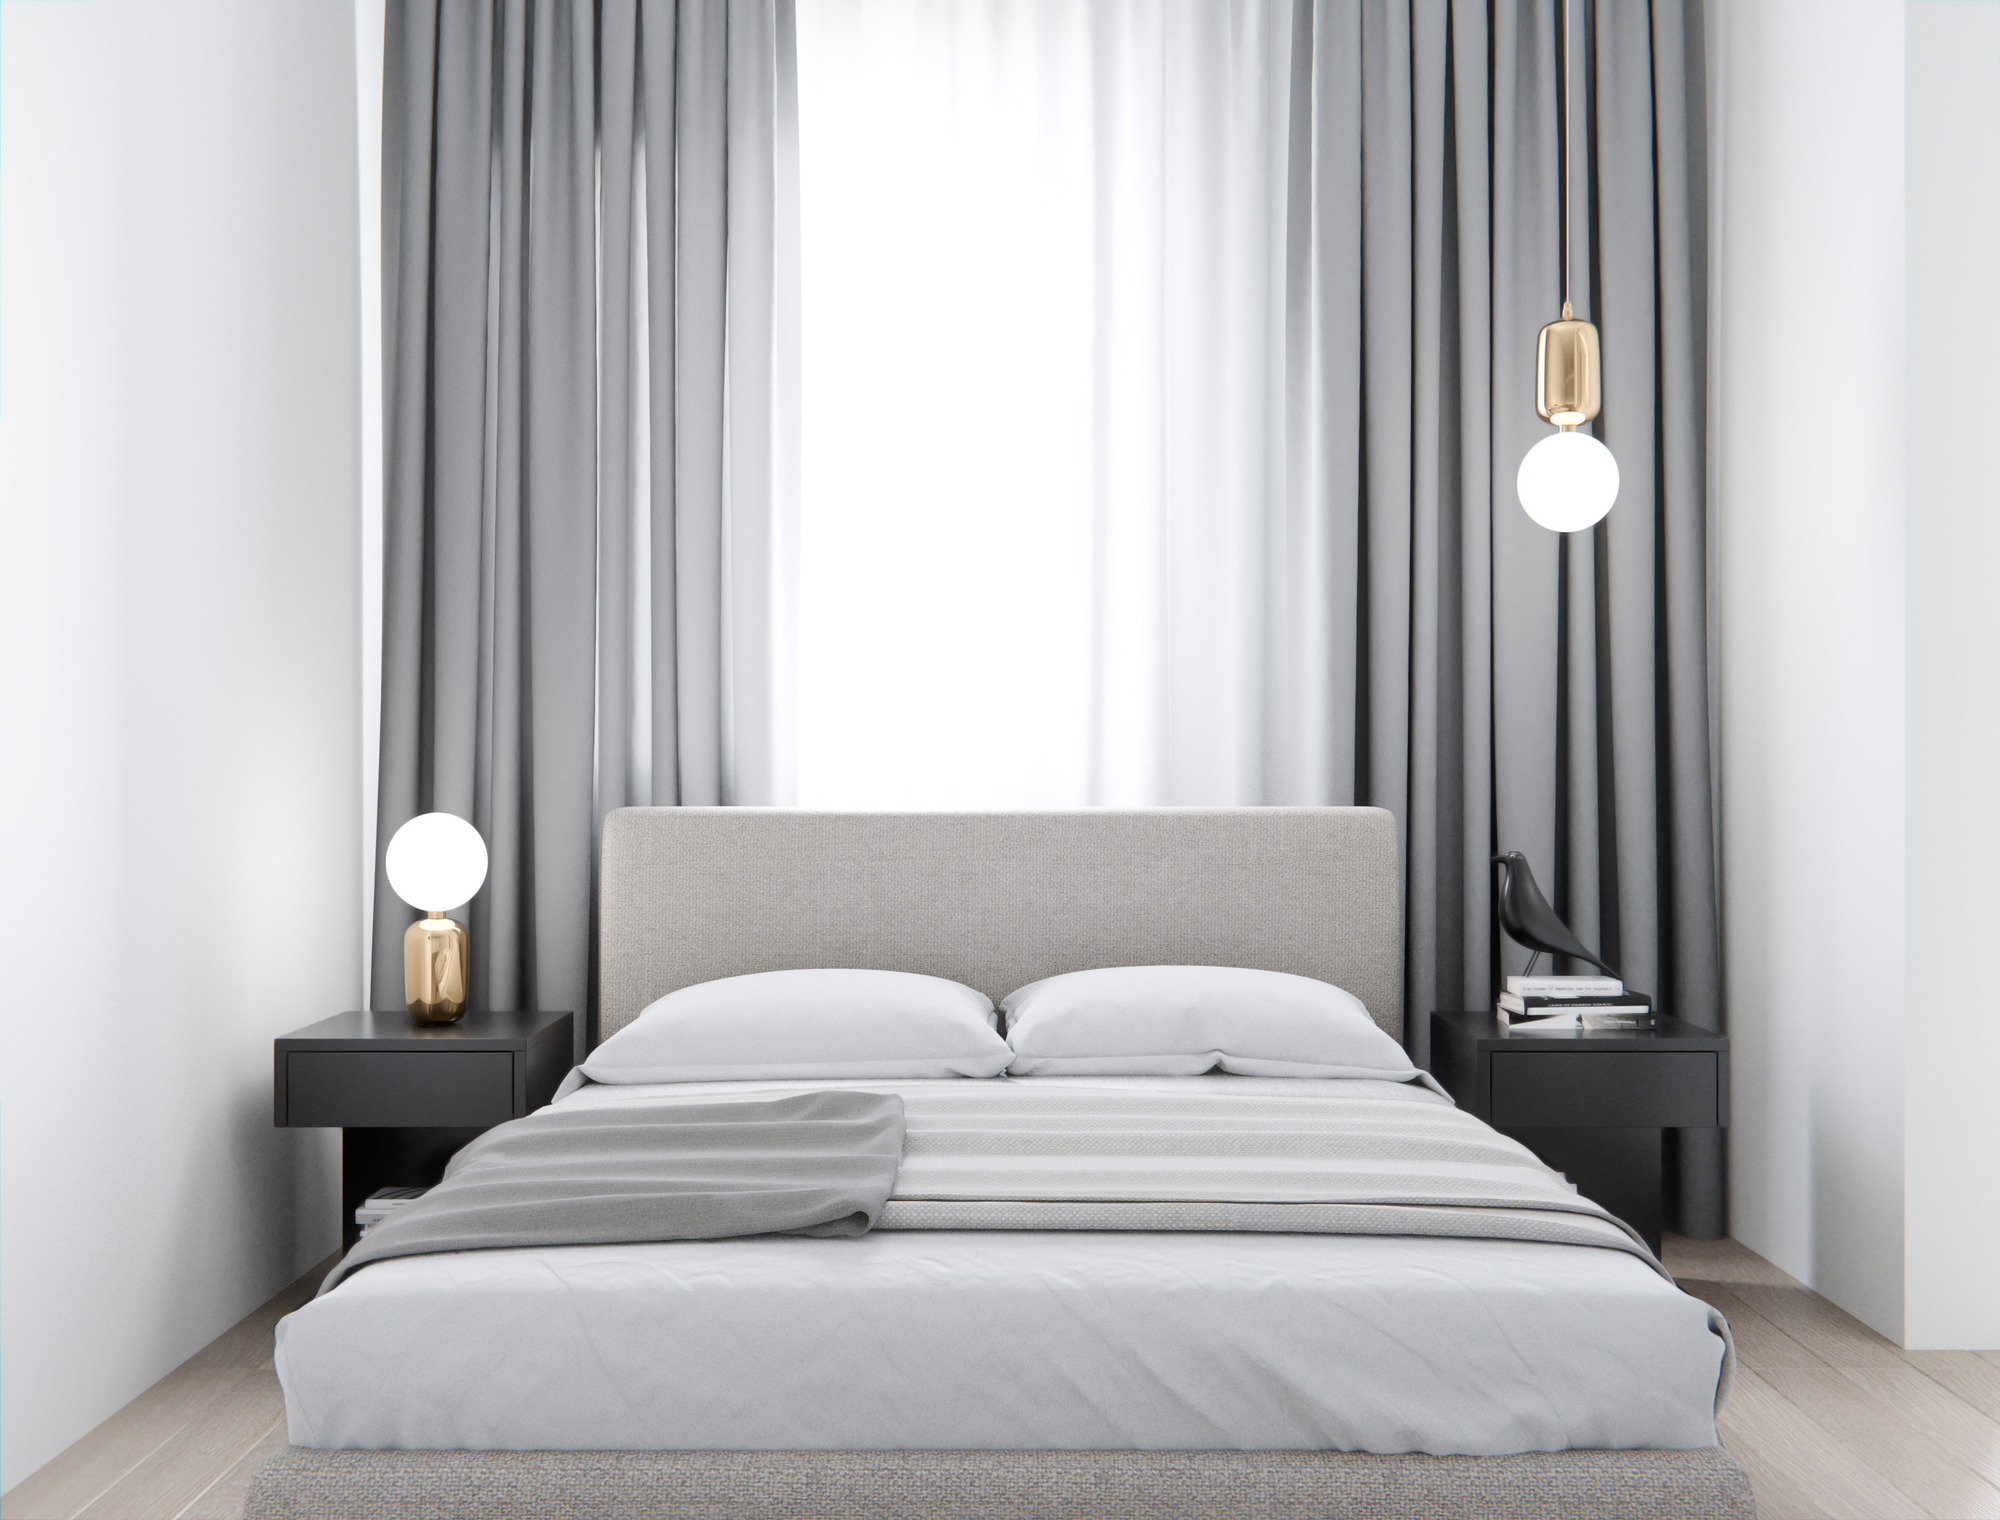 Bedroom Ideas 52 Modern Design Ideas For Your Bedroom The Luxpad with 12 Some of the Coolest Tricks of How to Build Modern Bedroom Designs